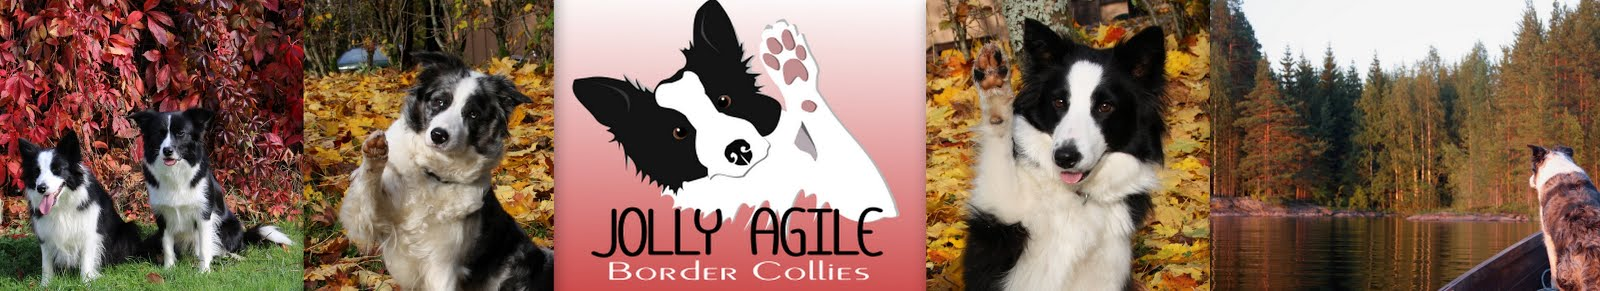 Jolly Agile  Border Collies